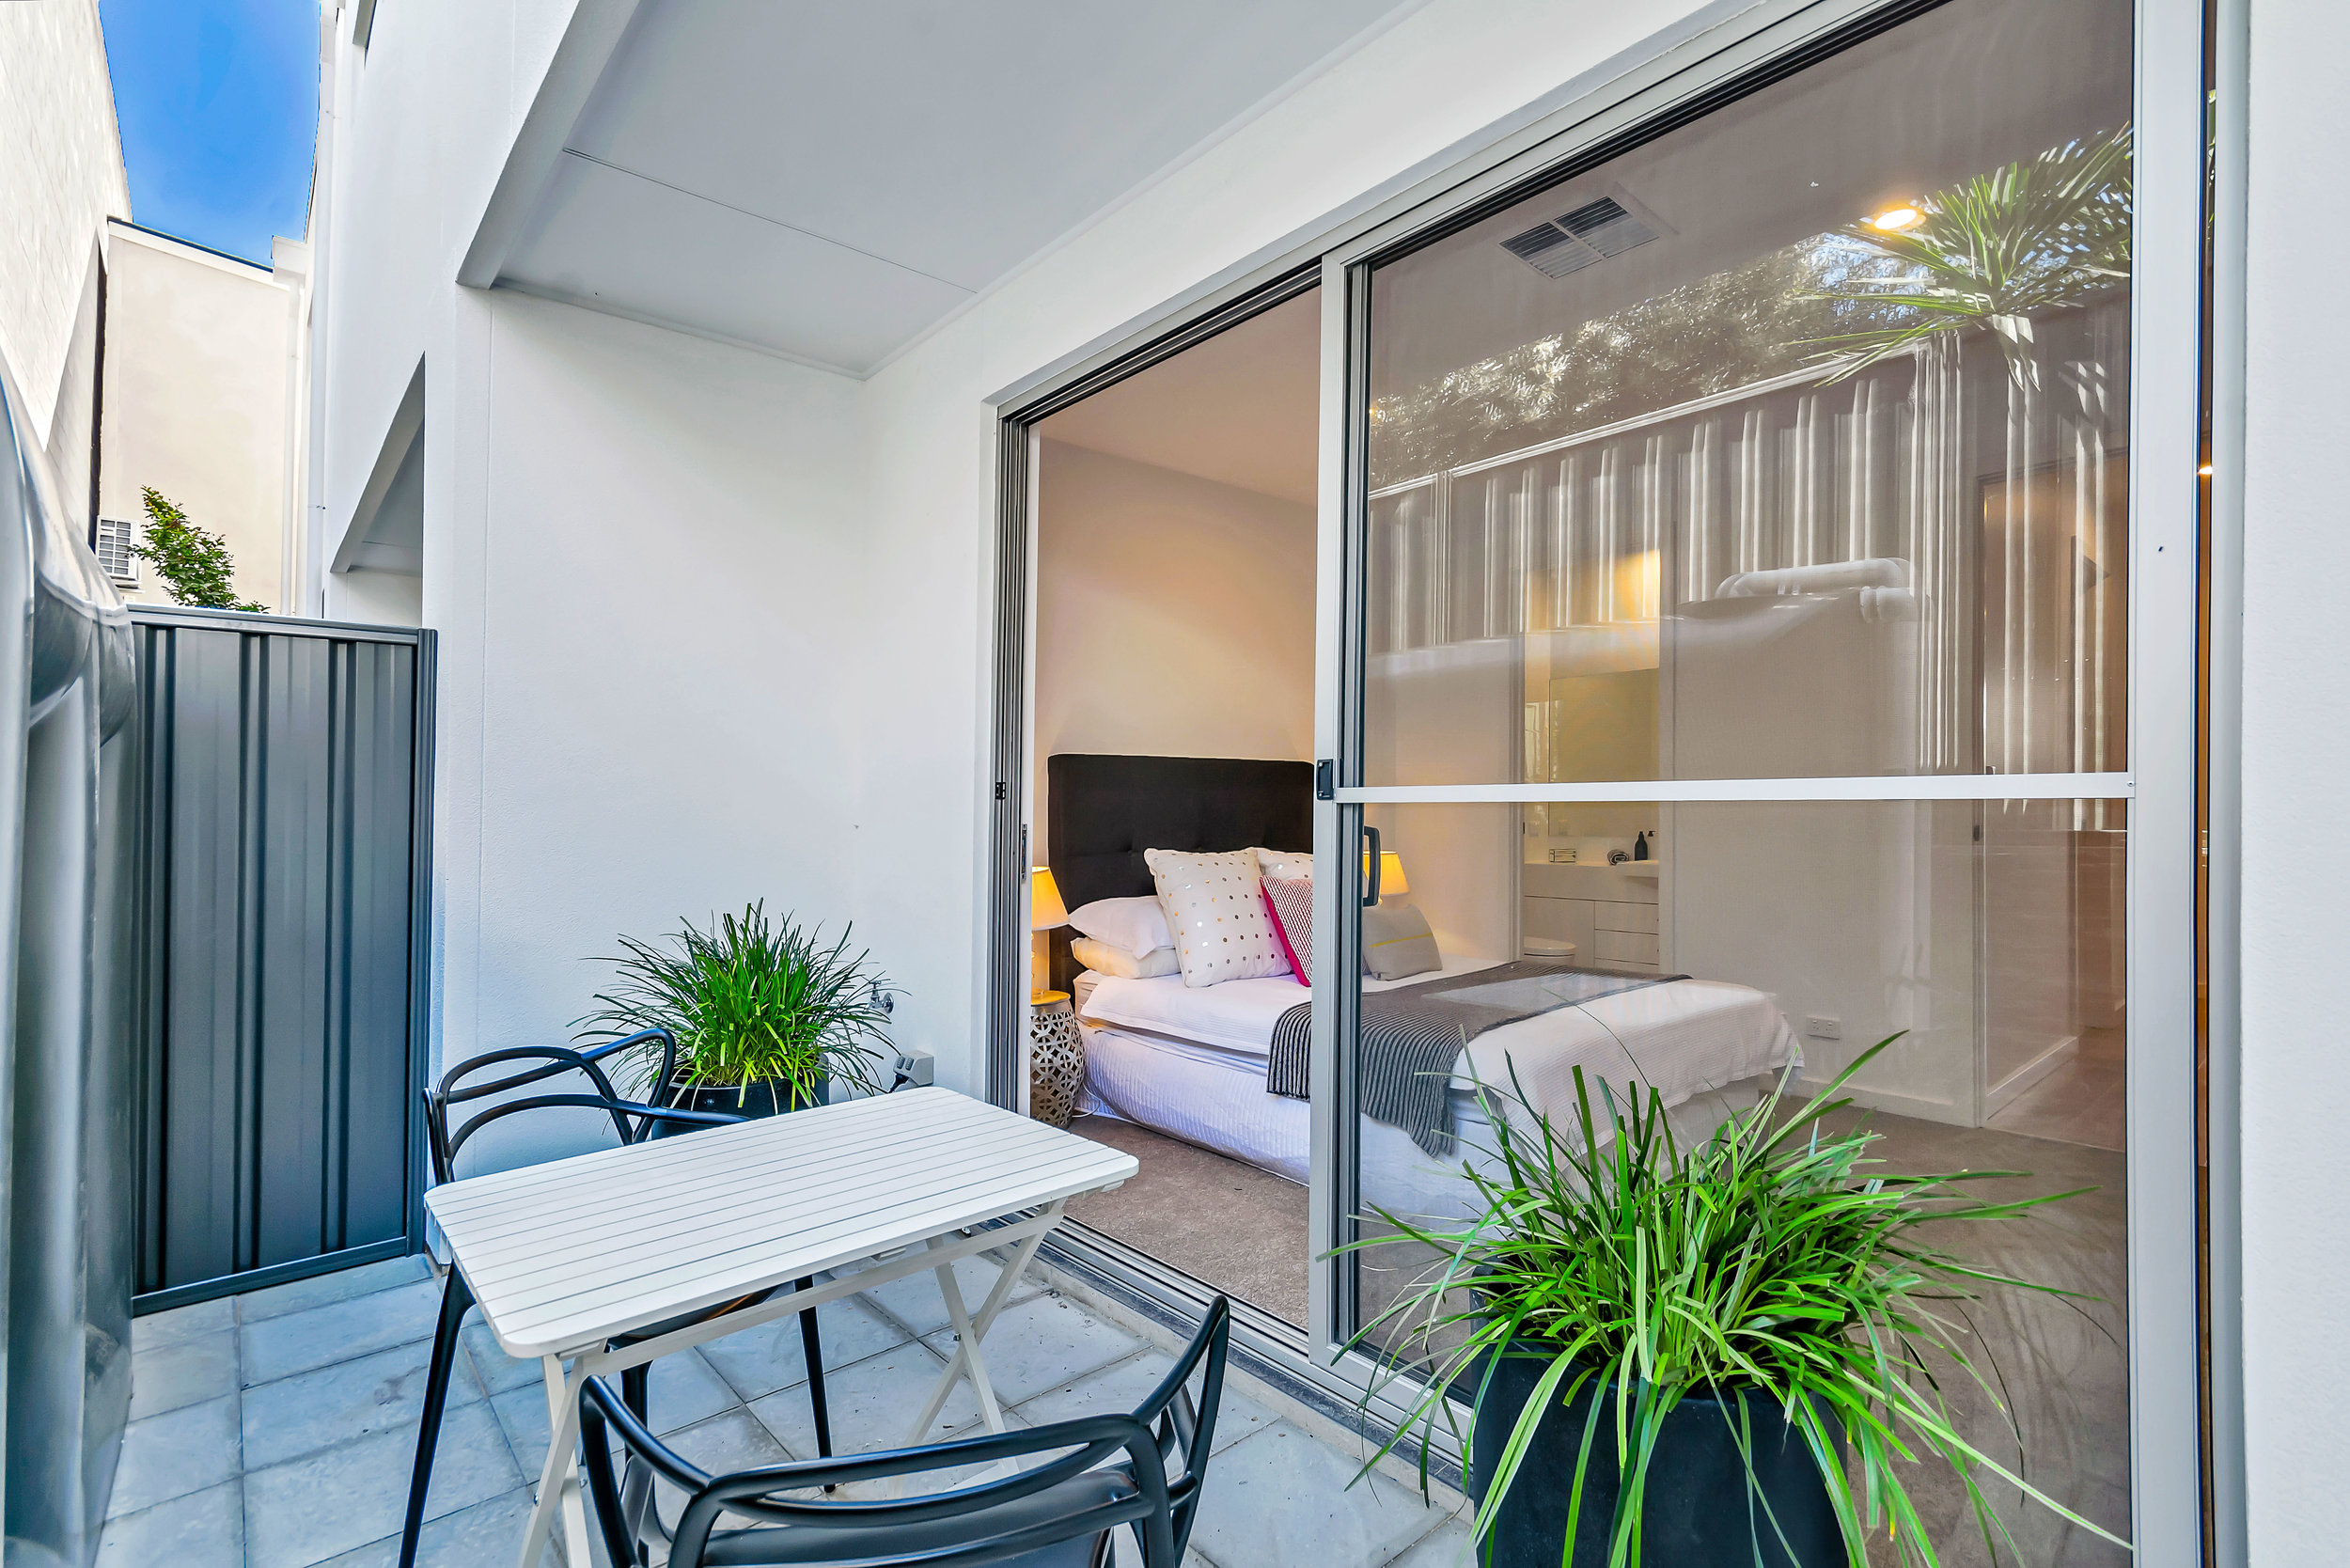 Quaint private courtyard to Bedroom 1